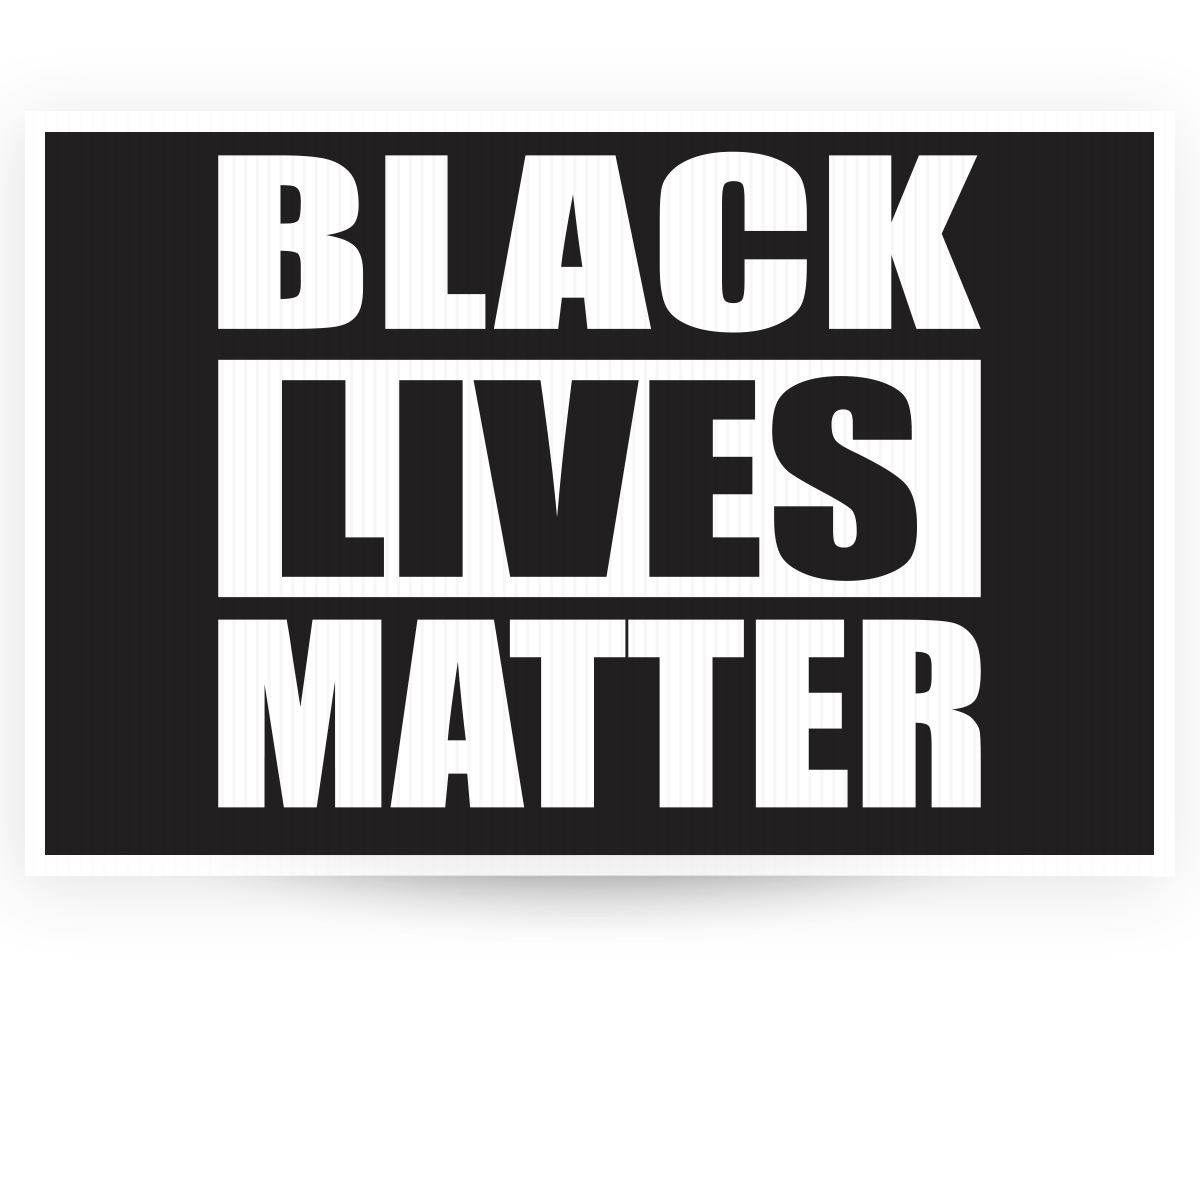 Black lives matter png. Right is wrong